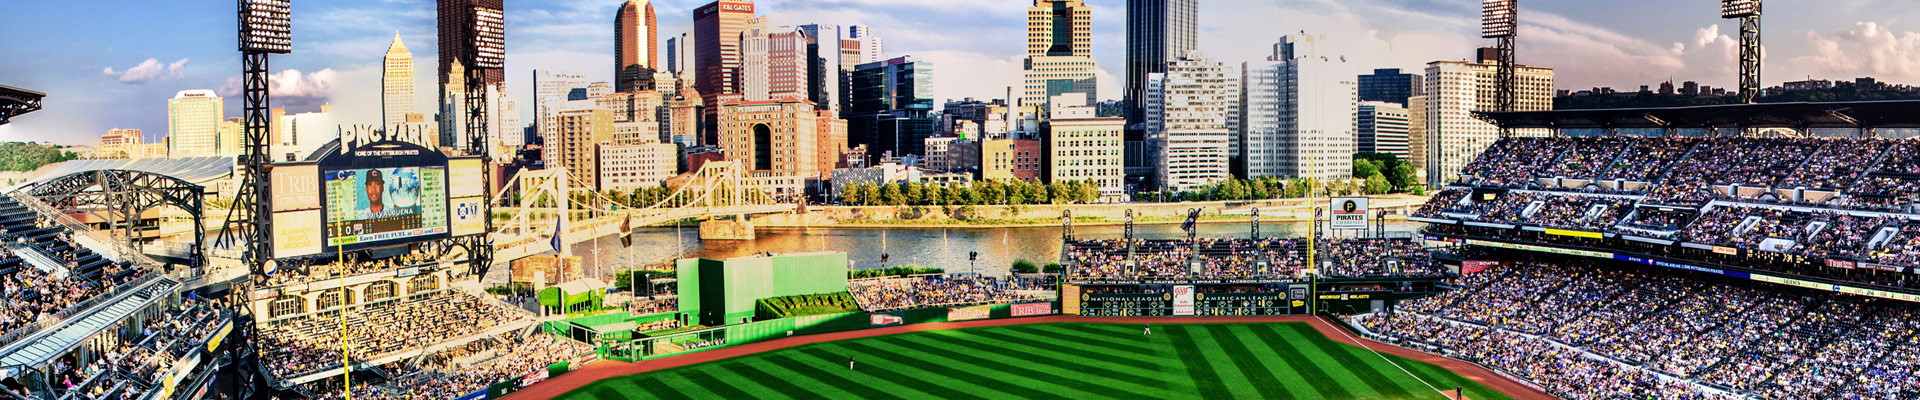 Vacation, Travel, and Ticket Packages for MLB Baseball